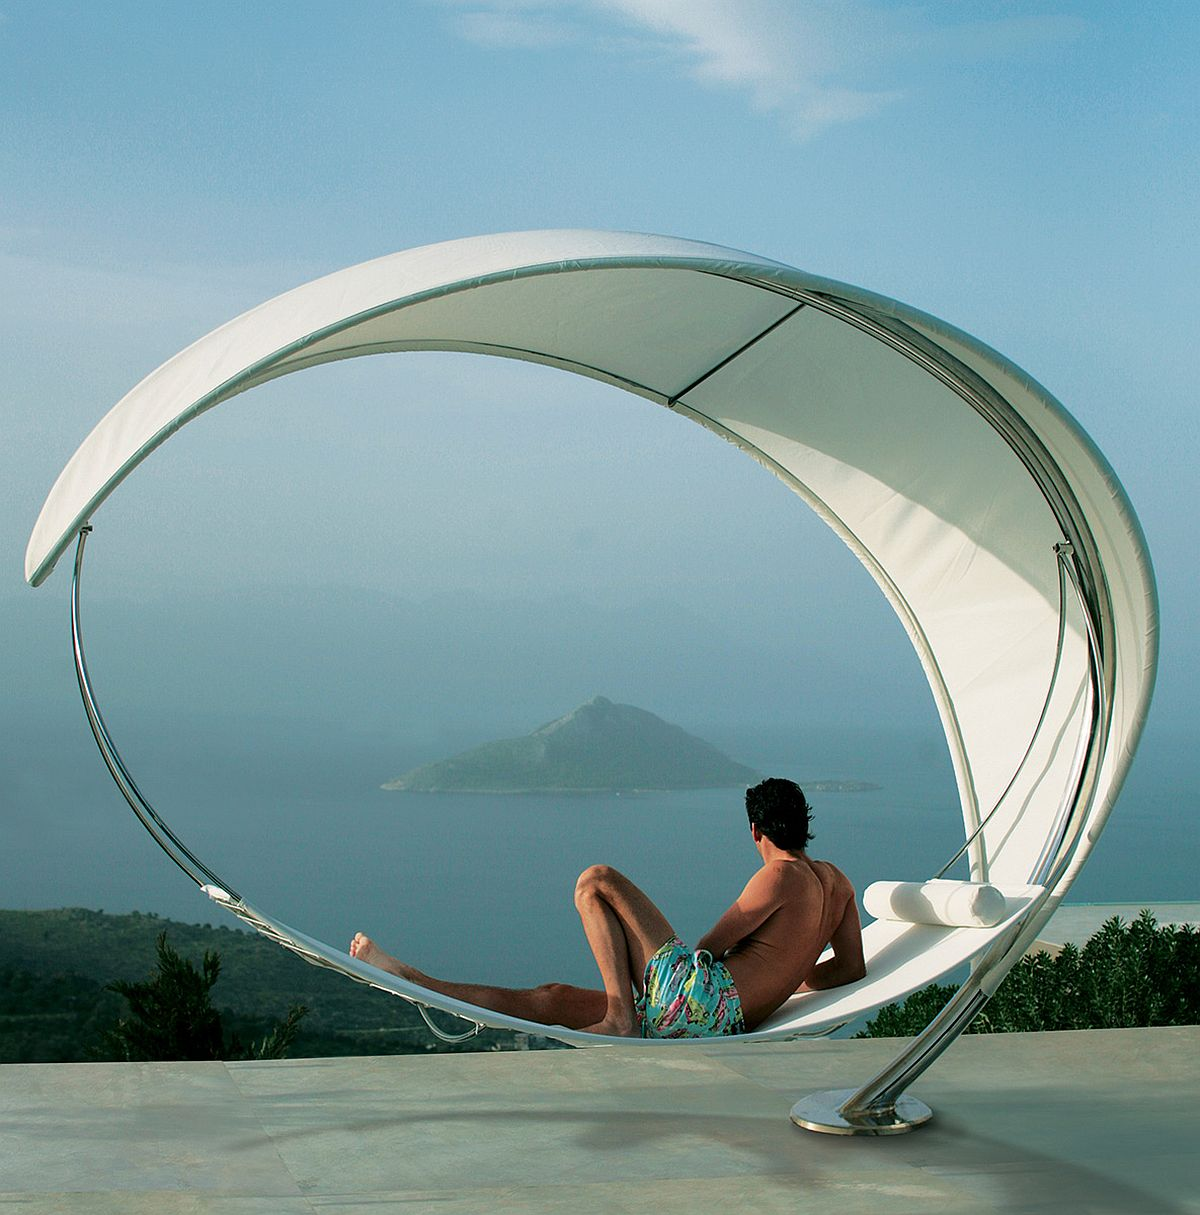 Captivating and sculptural silhouette of the Wave hammock